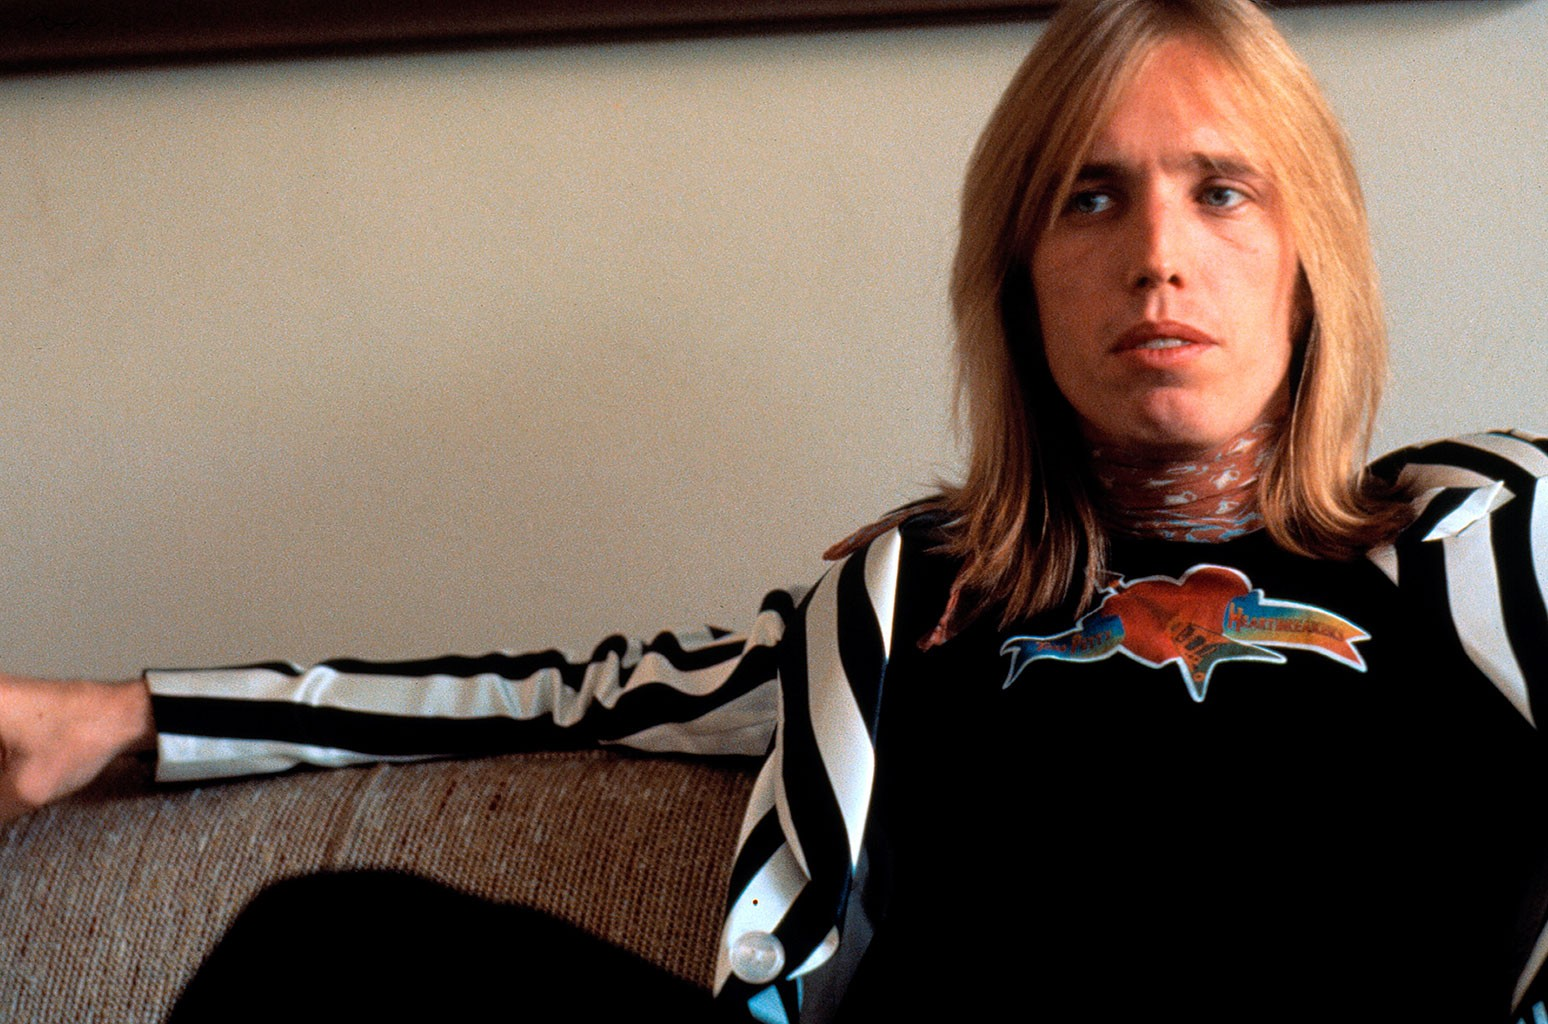 Tom Petty photographed in New York in 1977.